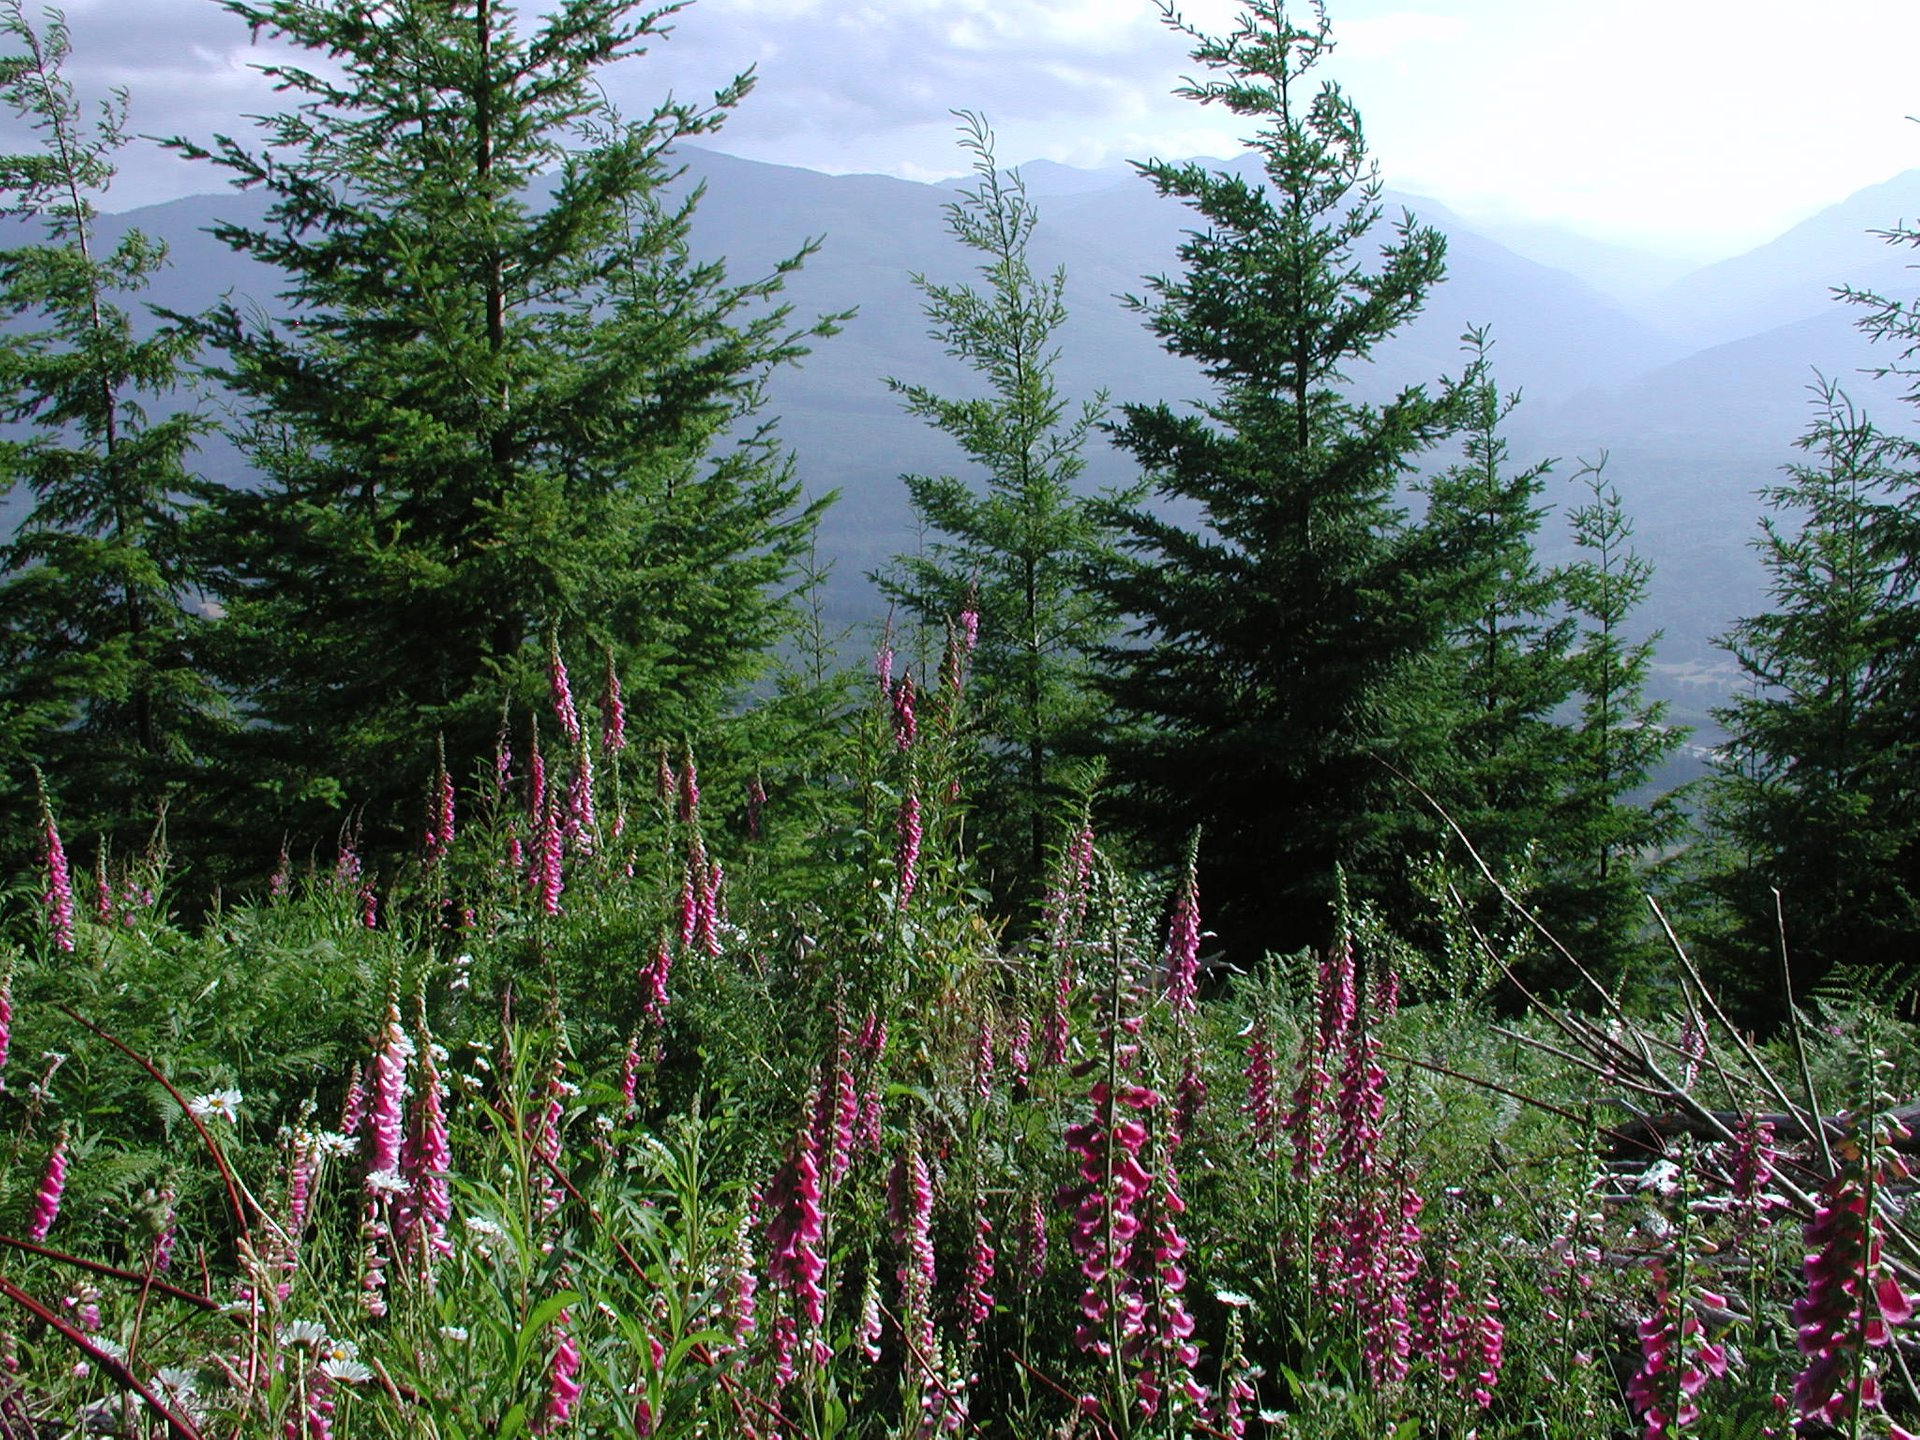 Lupine of the Skagit 2020